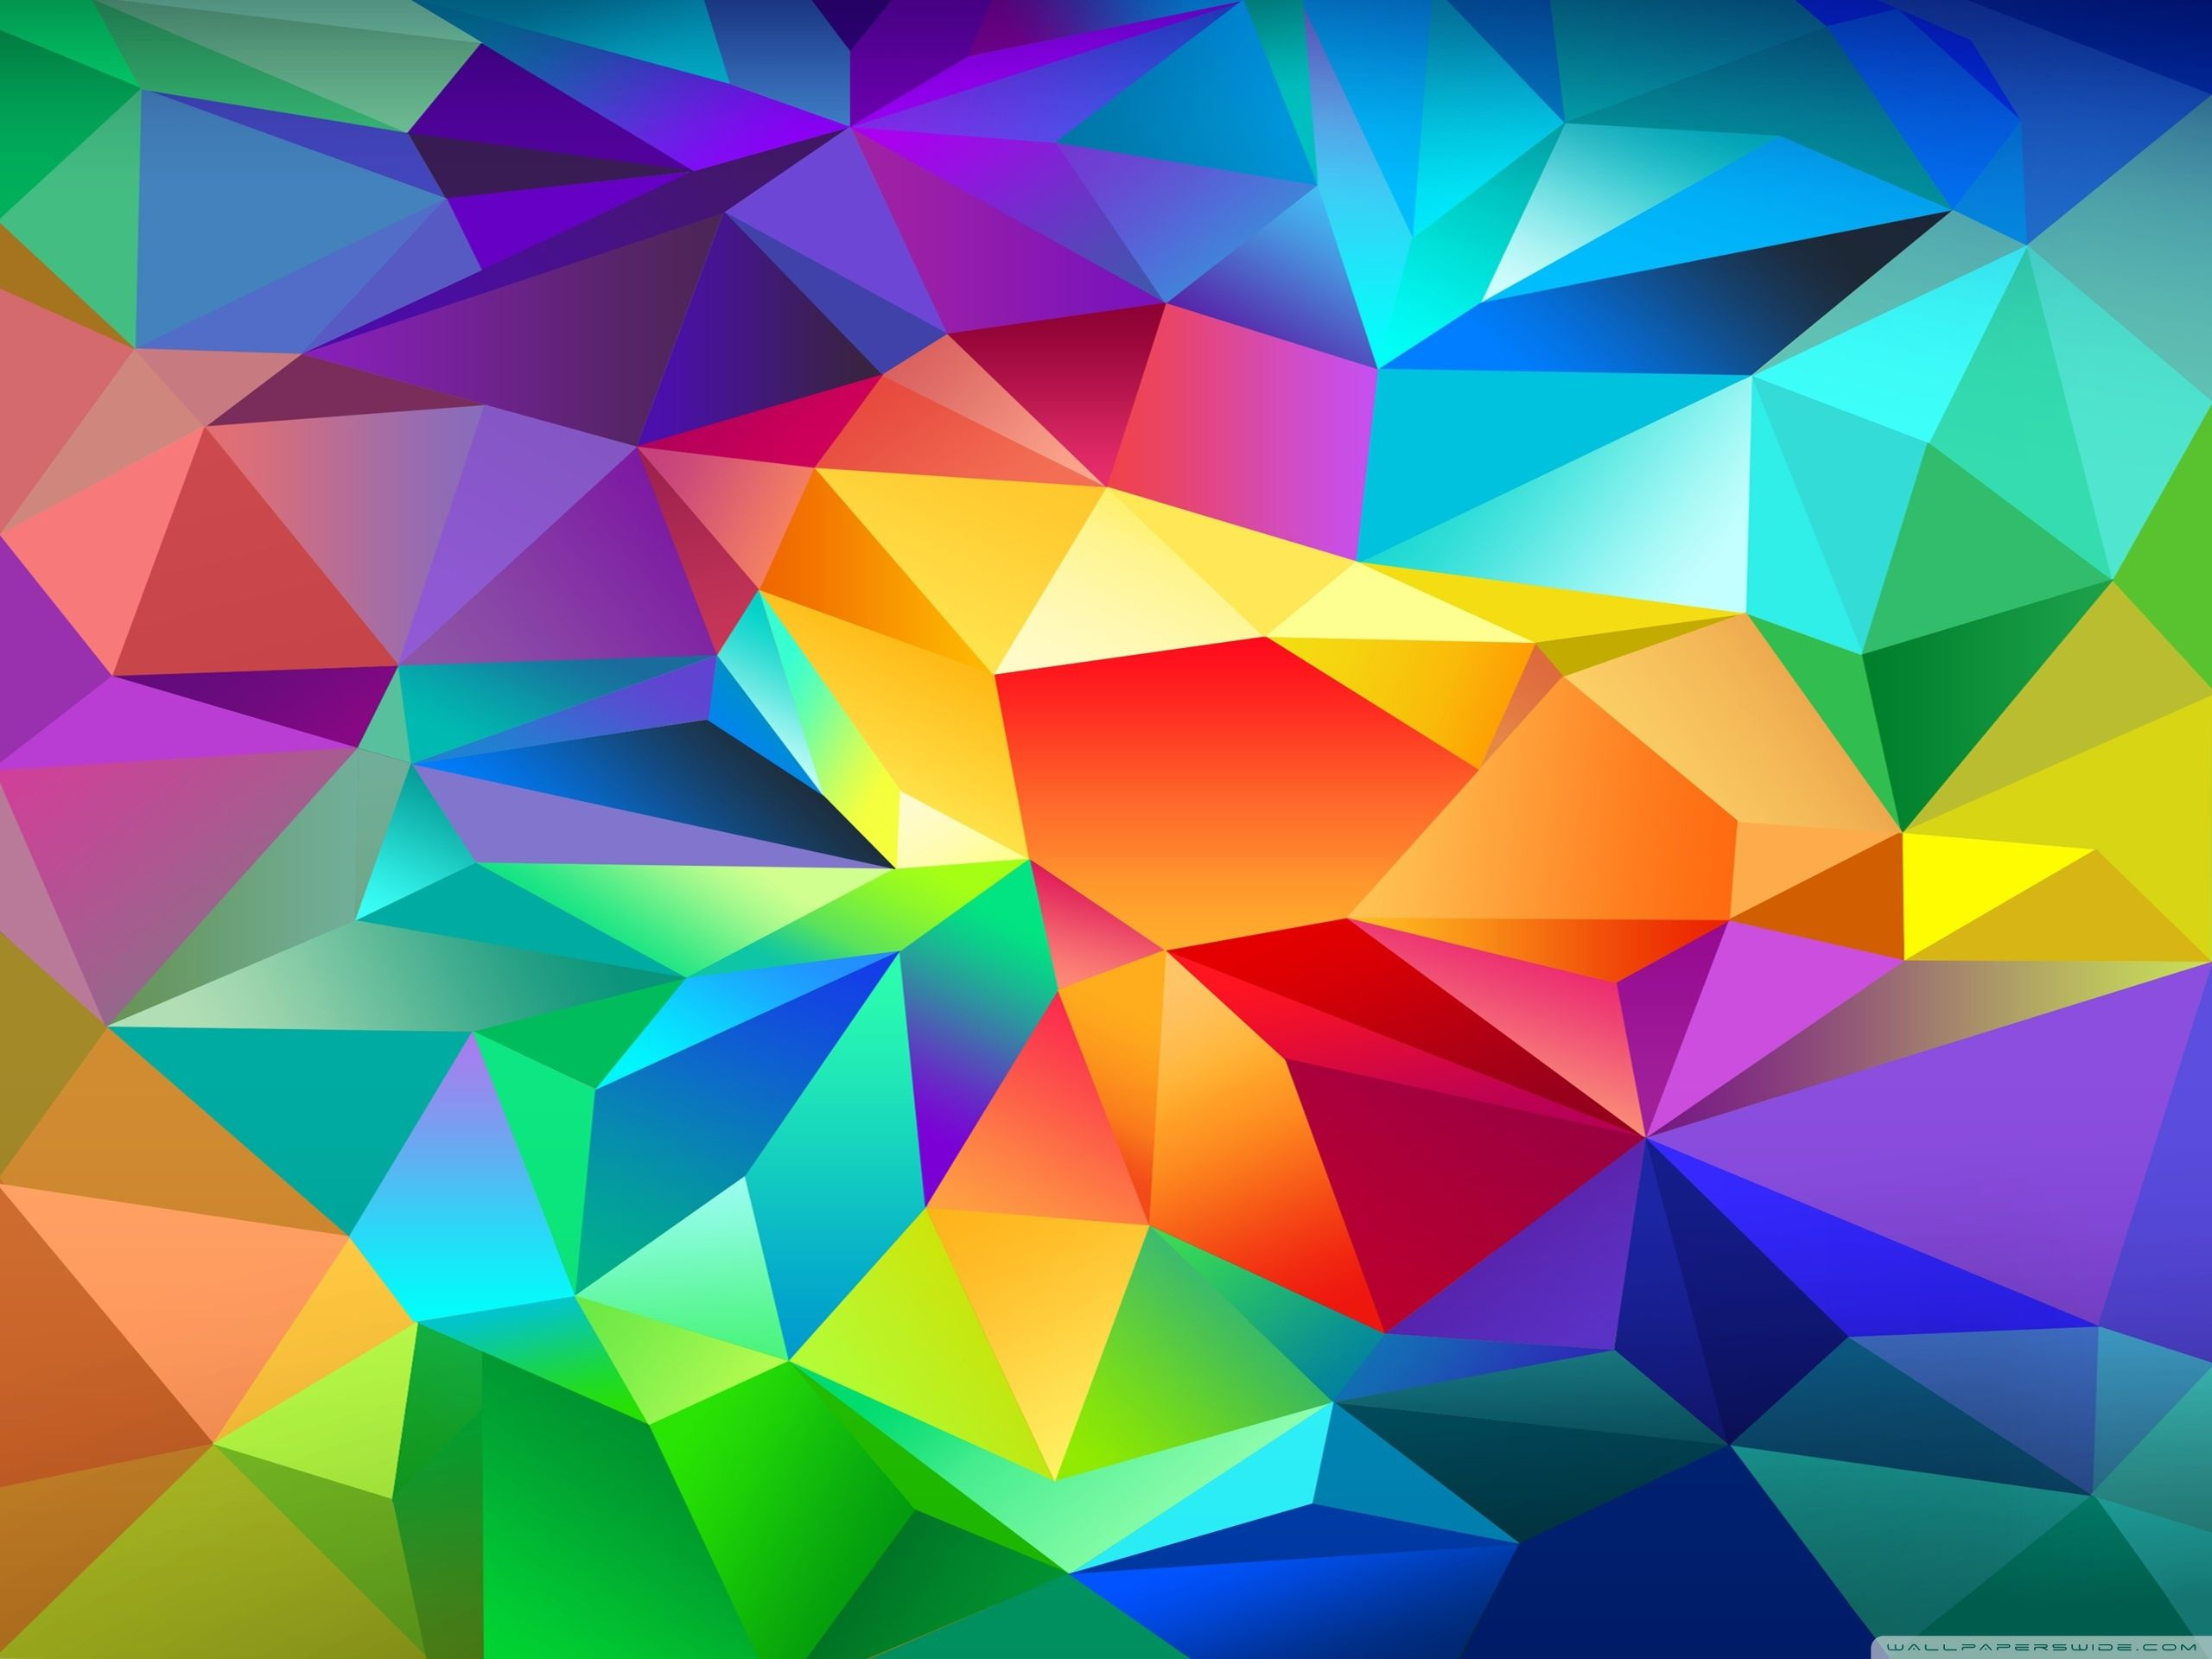 Wallpaper For Samsung Galaxy S5, Samsung Galaxy S5 Wallpapers For